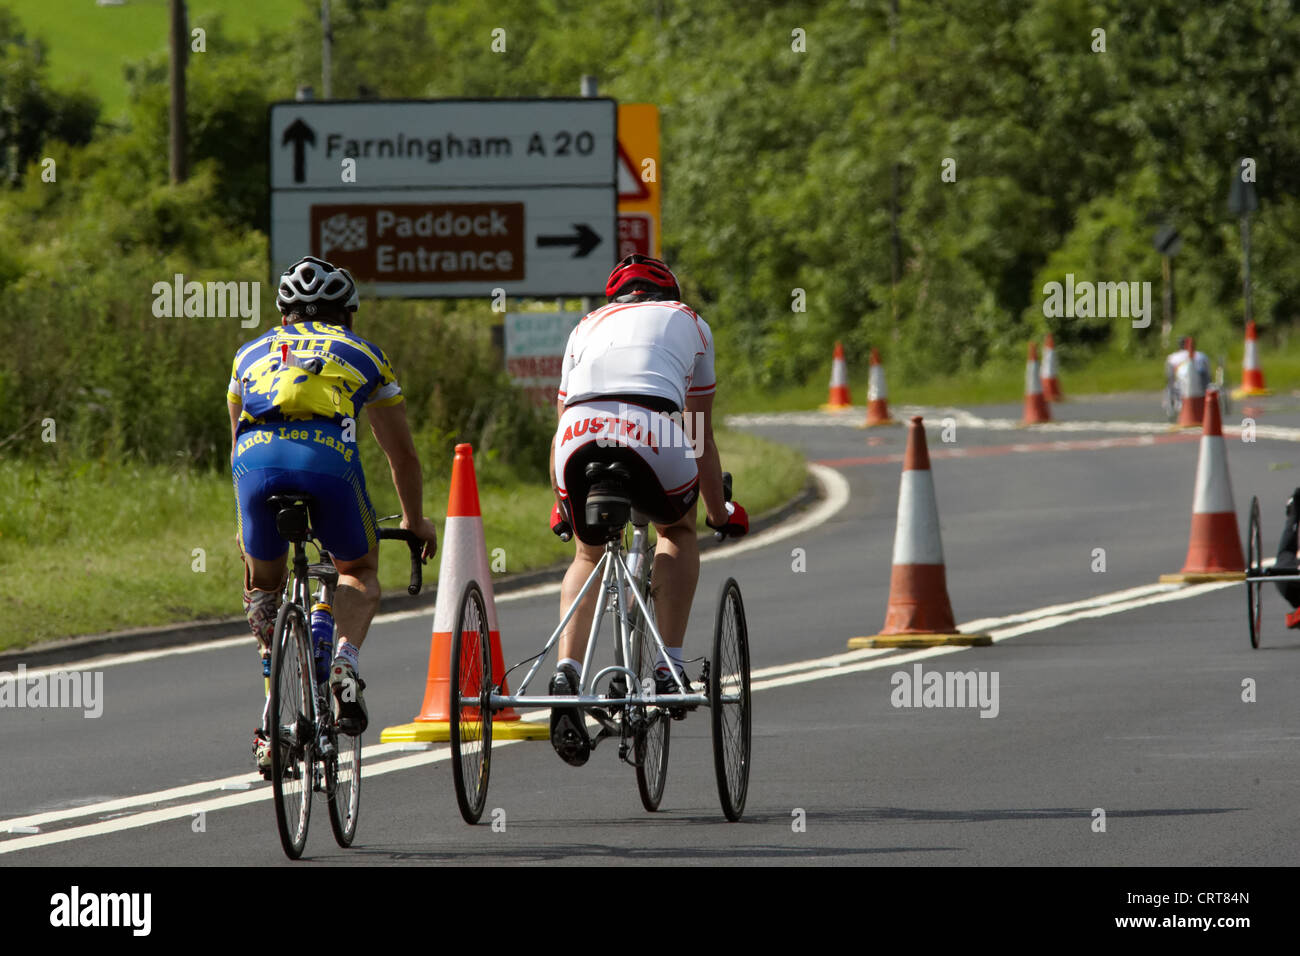 Paralympic cyclists at the paralympic training day at Brands Hatch. - Stock Image